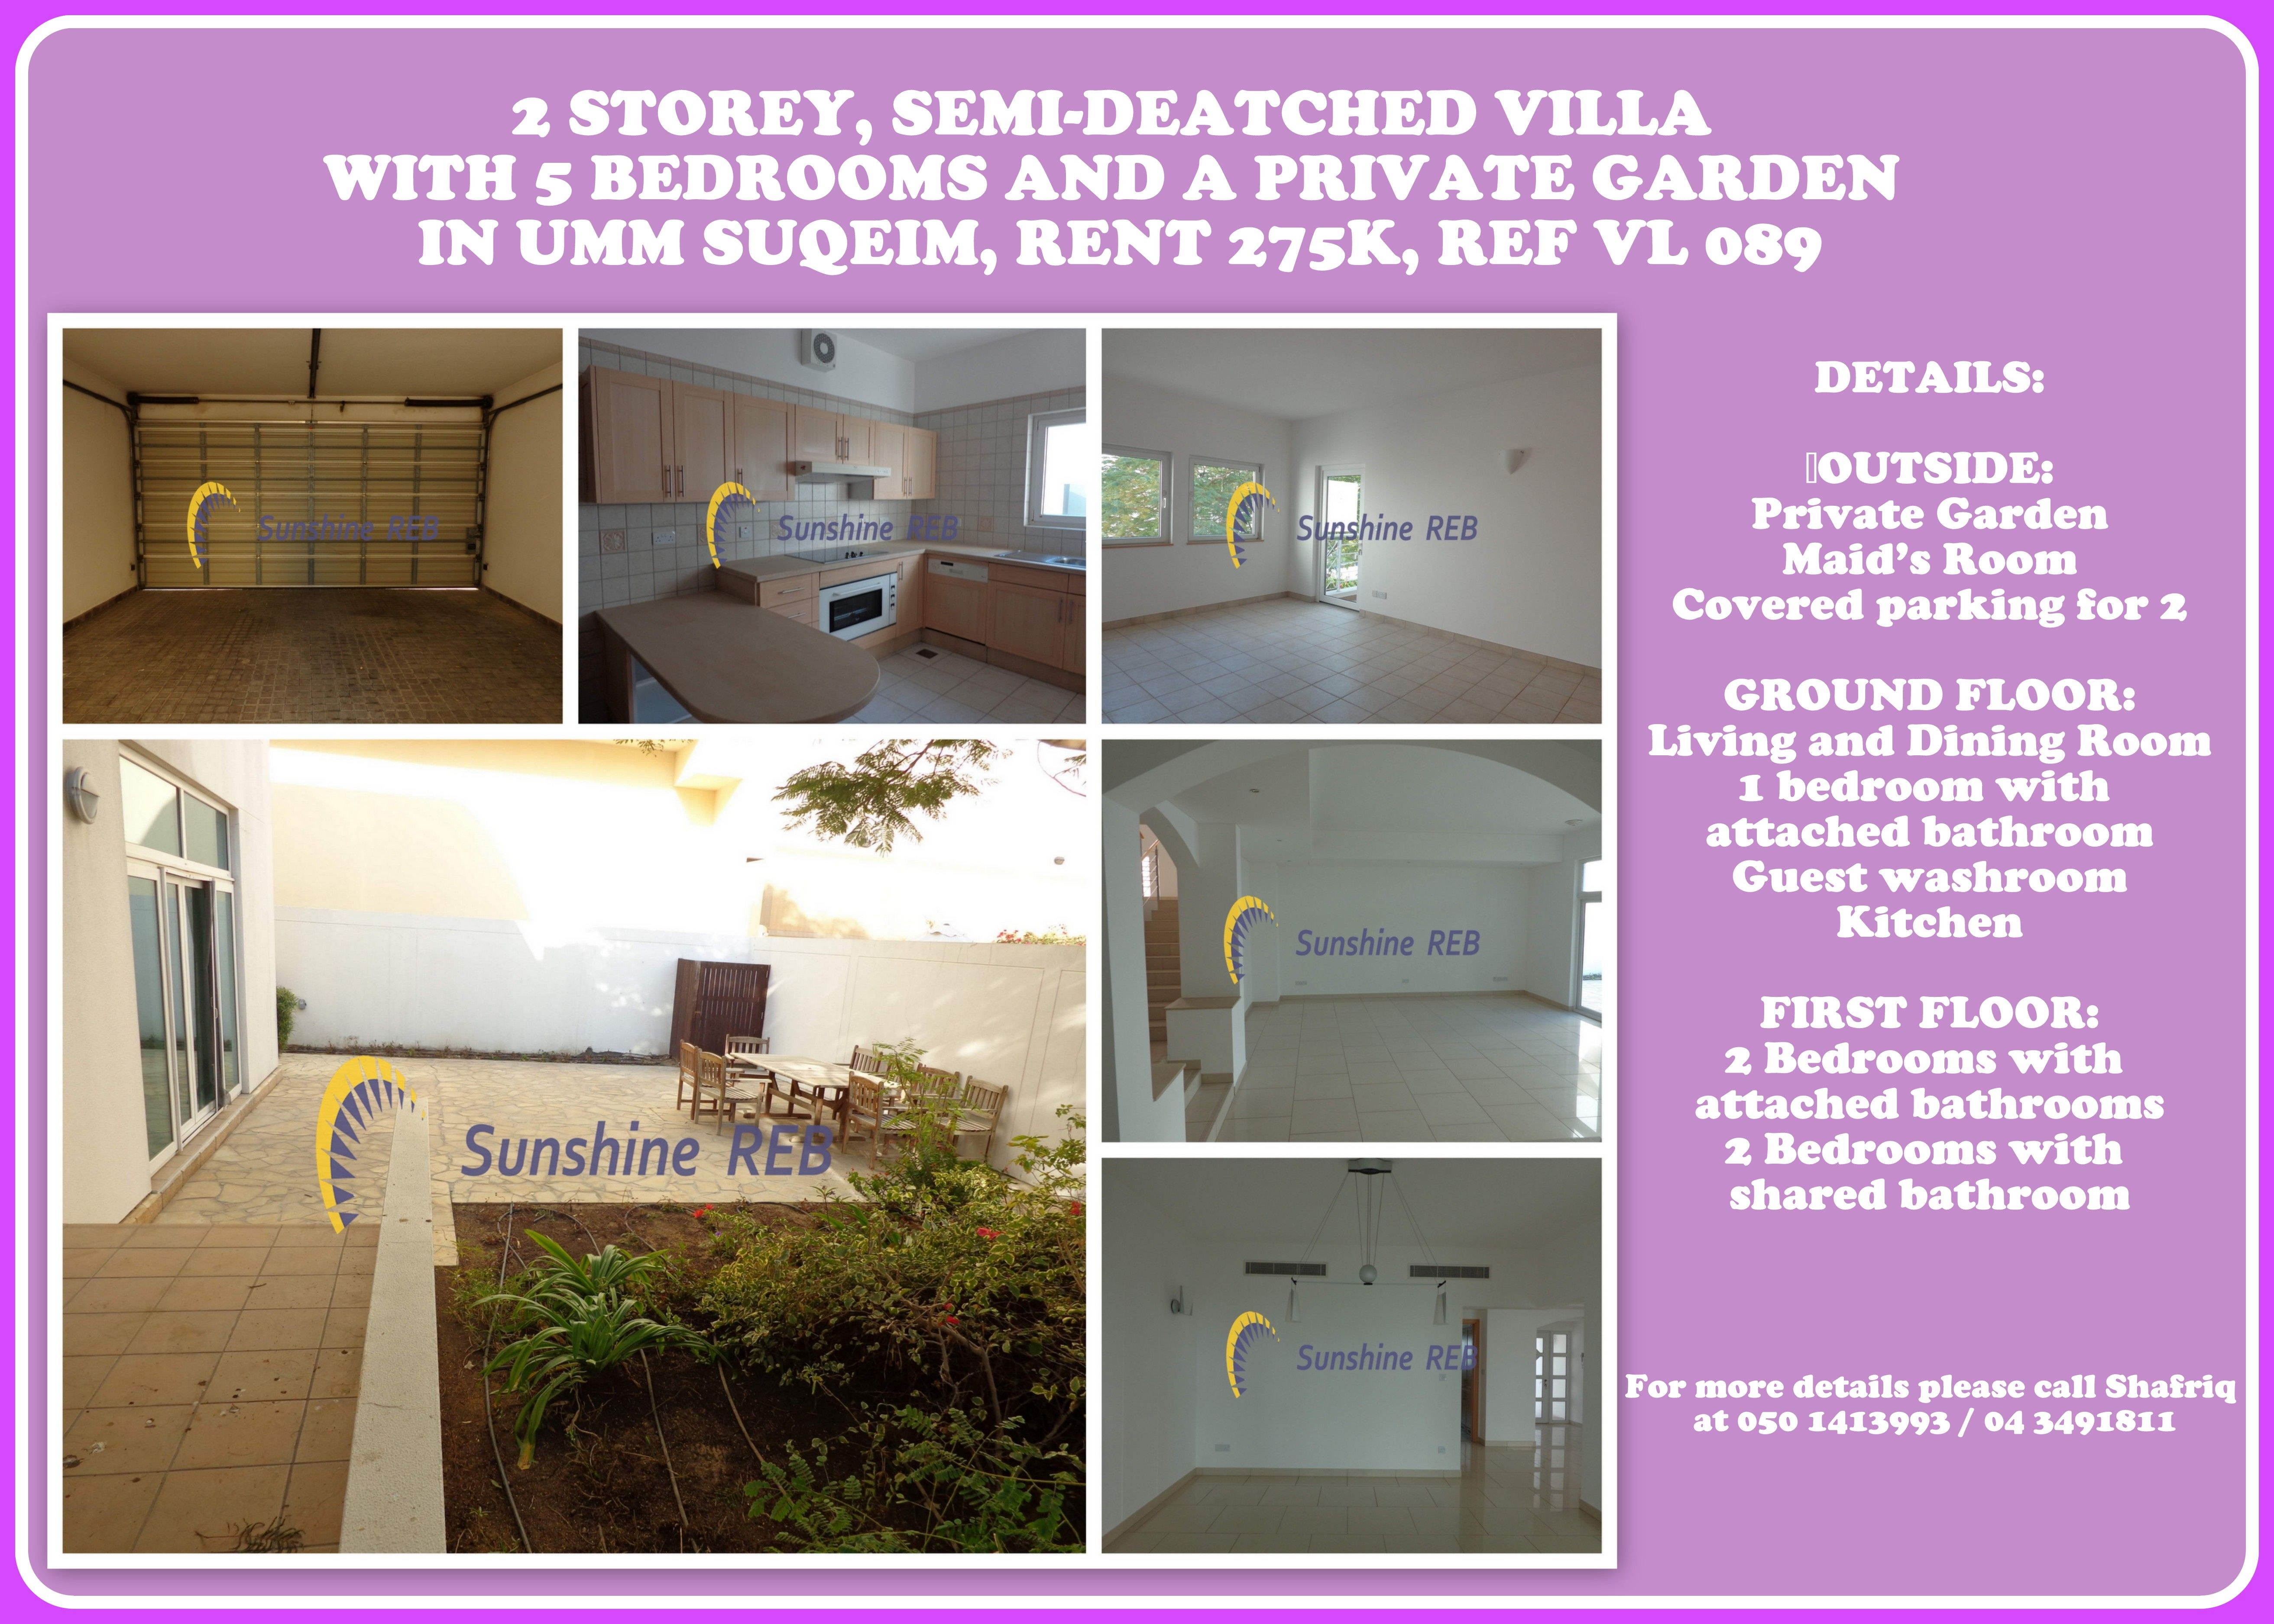 2 STOREY, SEMI-DEATCHED VILLA WITH 5 BEDROOMS AND A PRIVATE GARDEN IN UMM SUQEIM, RENT 275K, REF VL 089 DETAILS:  OUTSIDE: -Private Garden -Maid's Room -Covered parking for 2 GROUND FLOOR: -Living and Dining Room -1 bedroom with attached bathroom -Guest washroom -Kitchen FIRST FLOOR: -2 Bedrooms with attached bathrooms -2 Bedrooms with shared bathroom  For more details please call Shafriq at 050 1413993 / 04 3491811